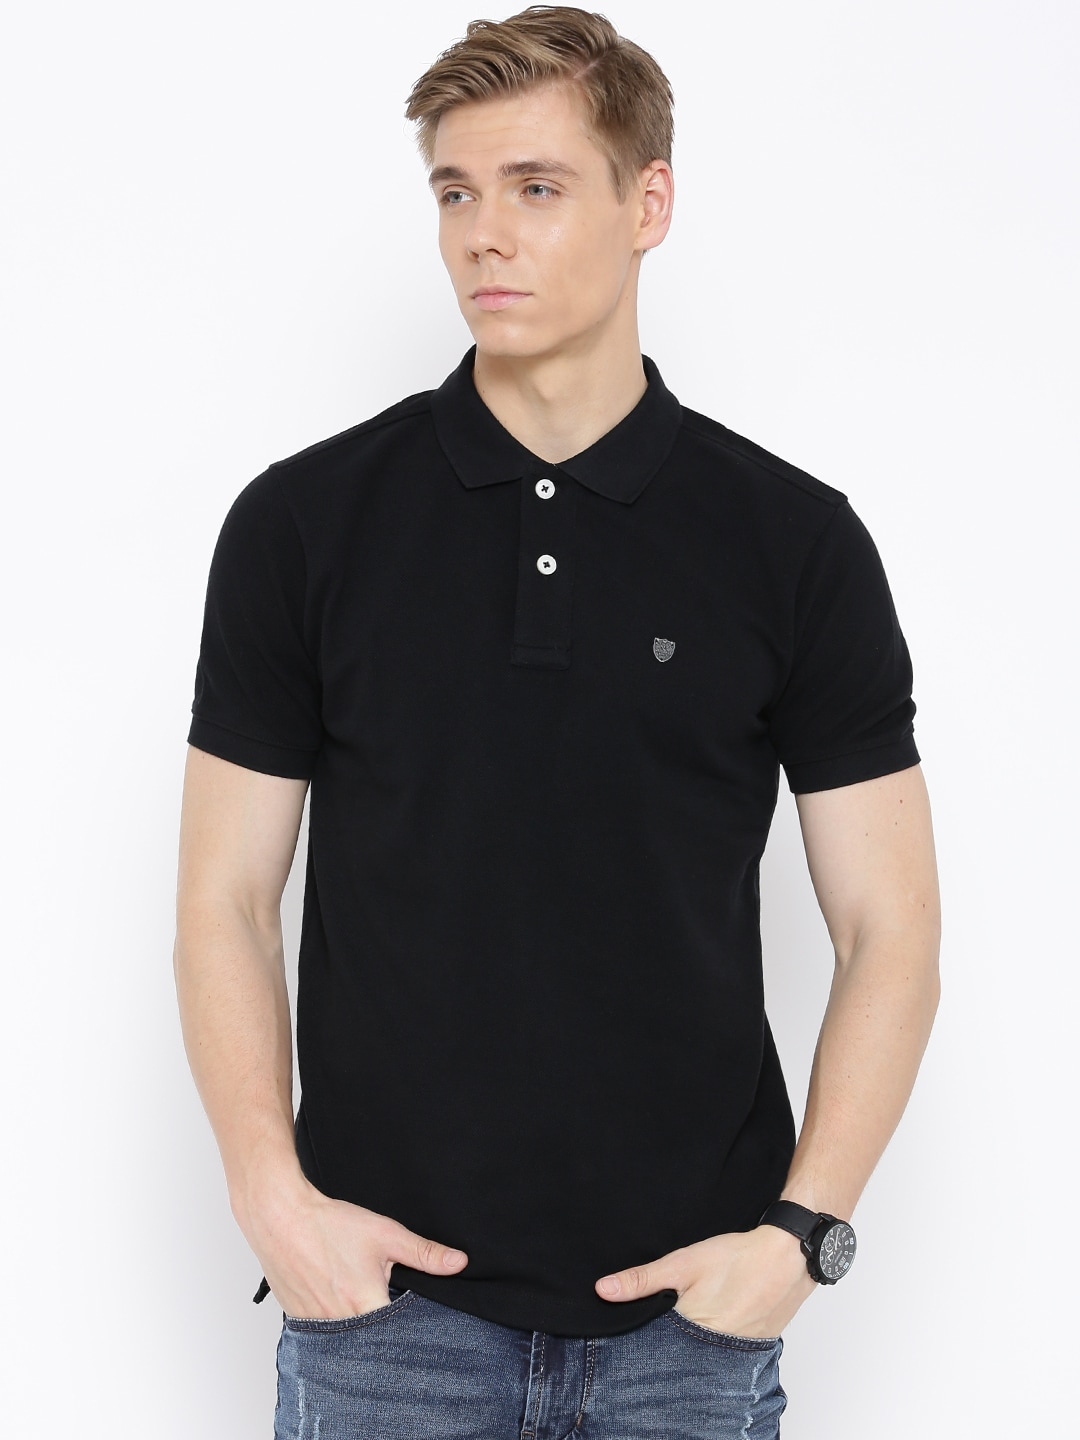 4ad92349 Numero uno nmfnhz621-black Black Polo T Shirt - Best Price in India ...